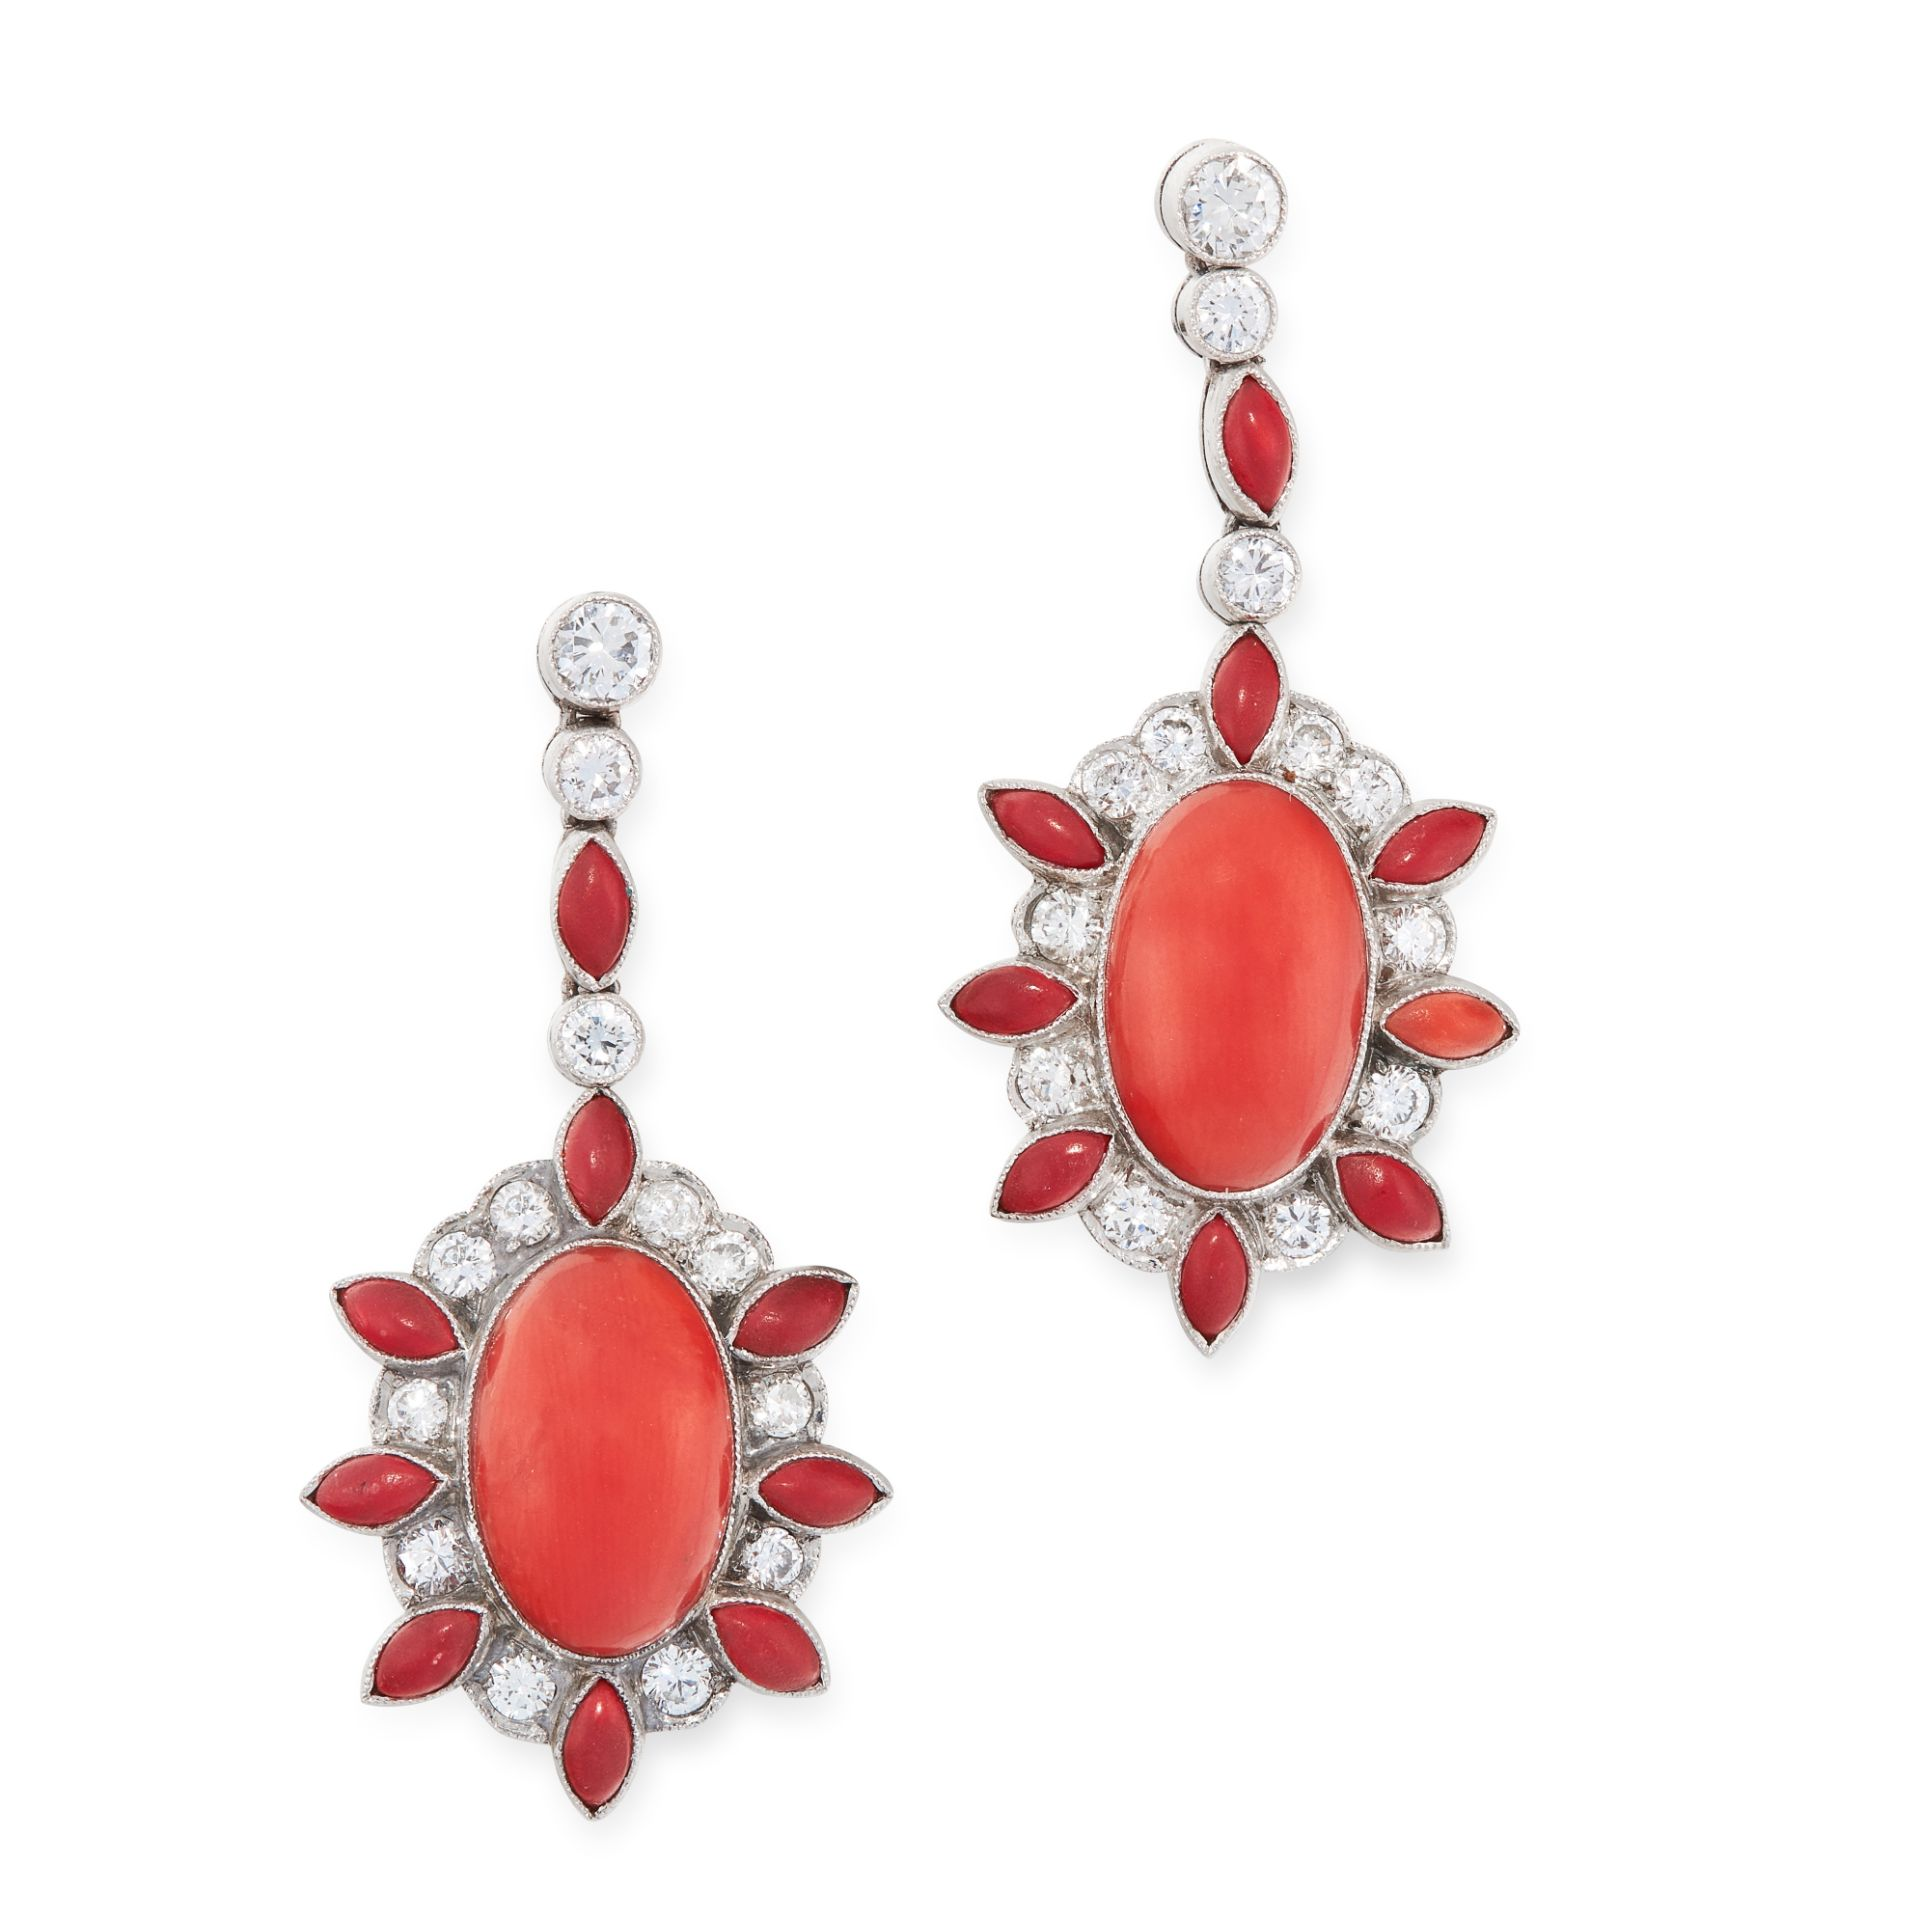 A PAIR OF ART DECO CORAL AND DIAMOND EARRINGS in platinum, each set with an oval cabochon coral,